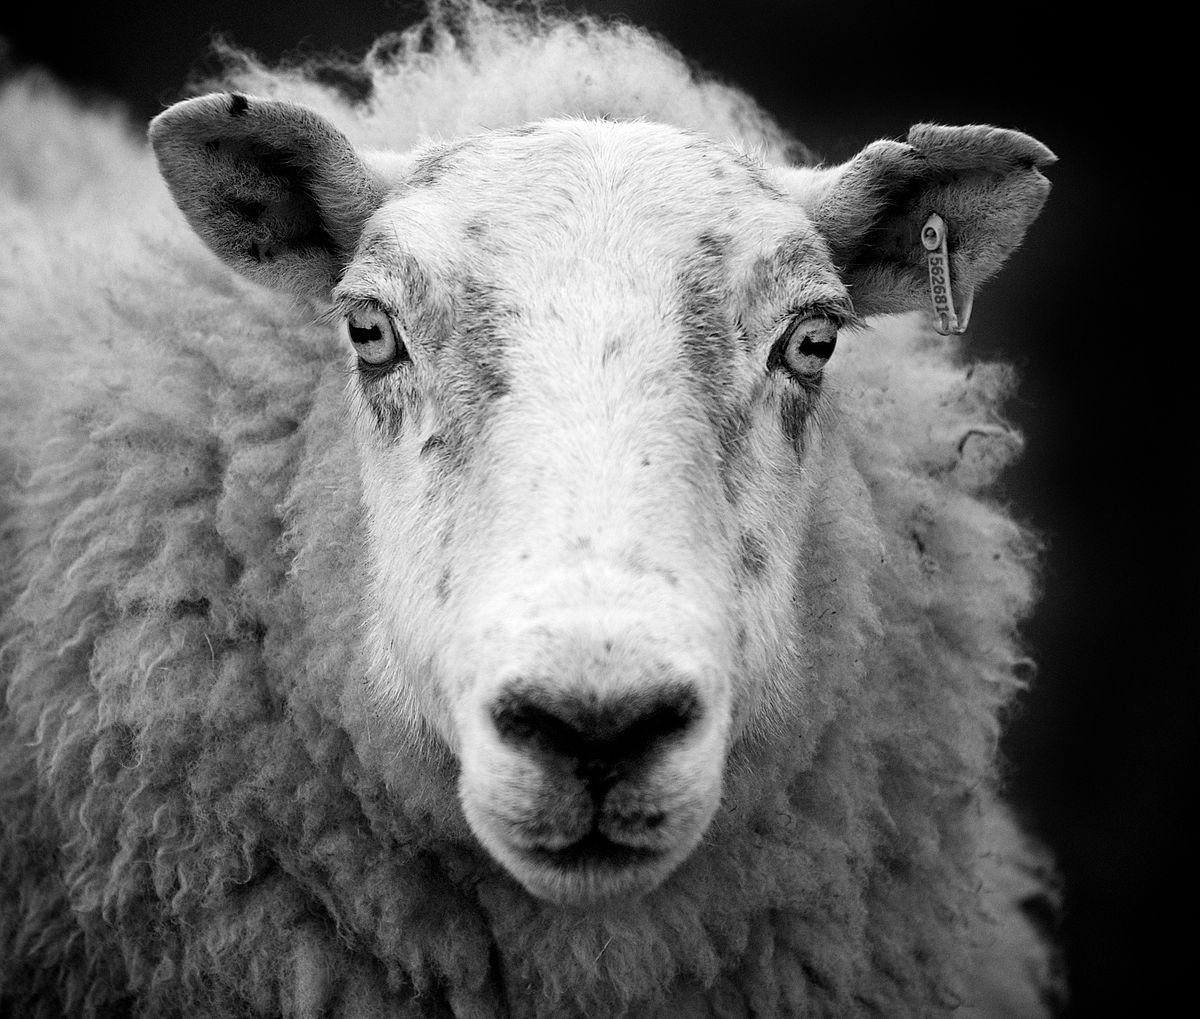 Ewe sheep black and white.jpg